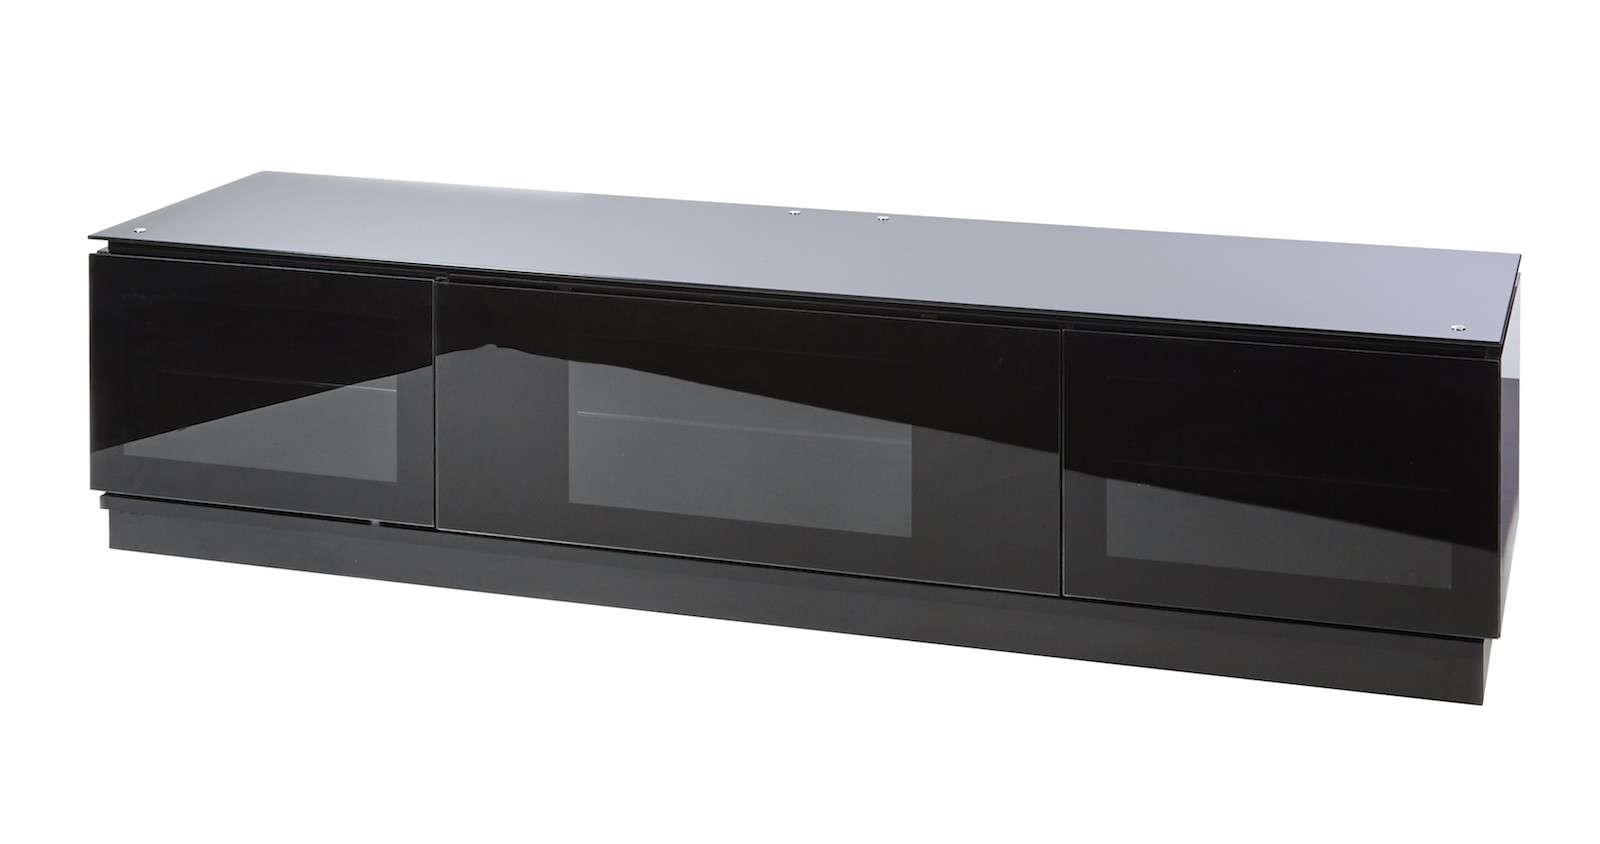 Black Gloss Tv Unit Up To 80 Inch Flat Screen Tv | Mmt D1800 Pertaining To Tv Stands Black Gloss (View 1 of 15)